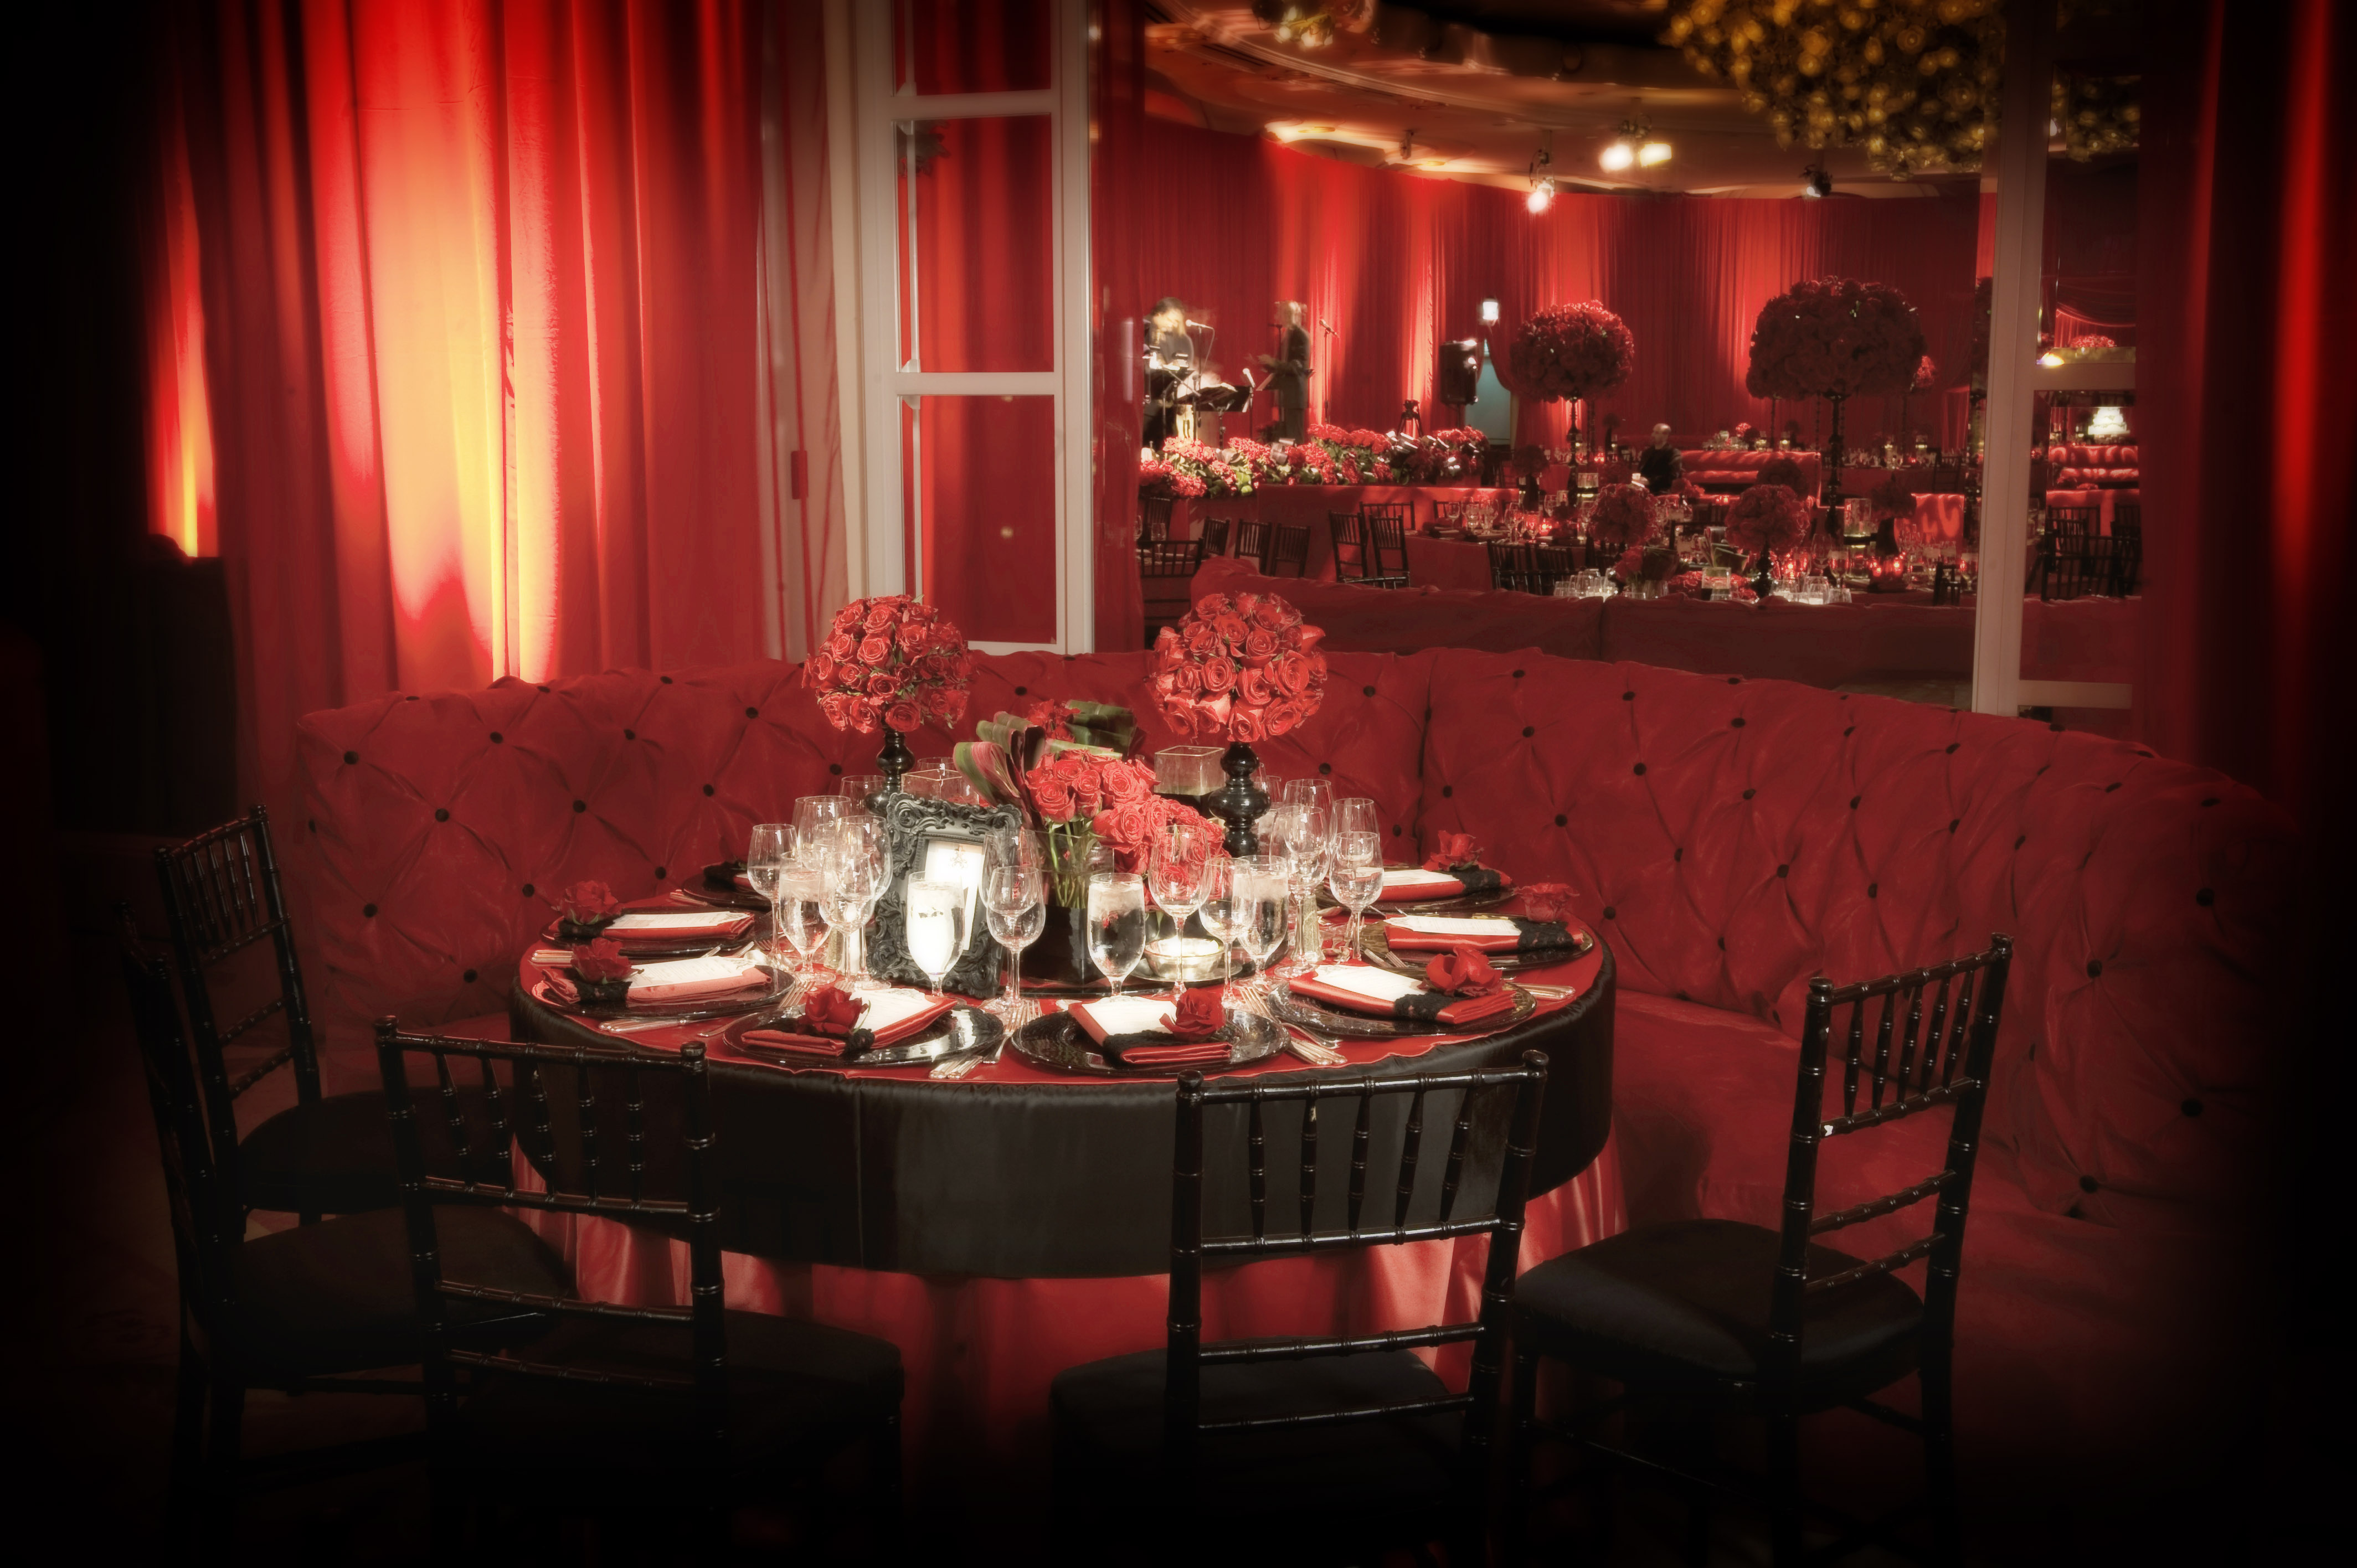 Red wedding reception tufted banquette bench for dinner table